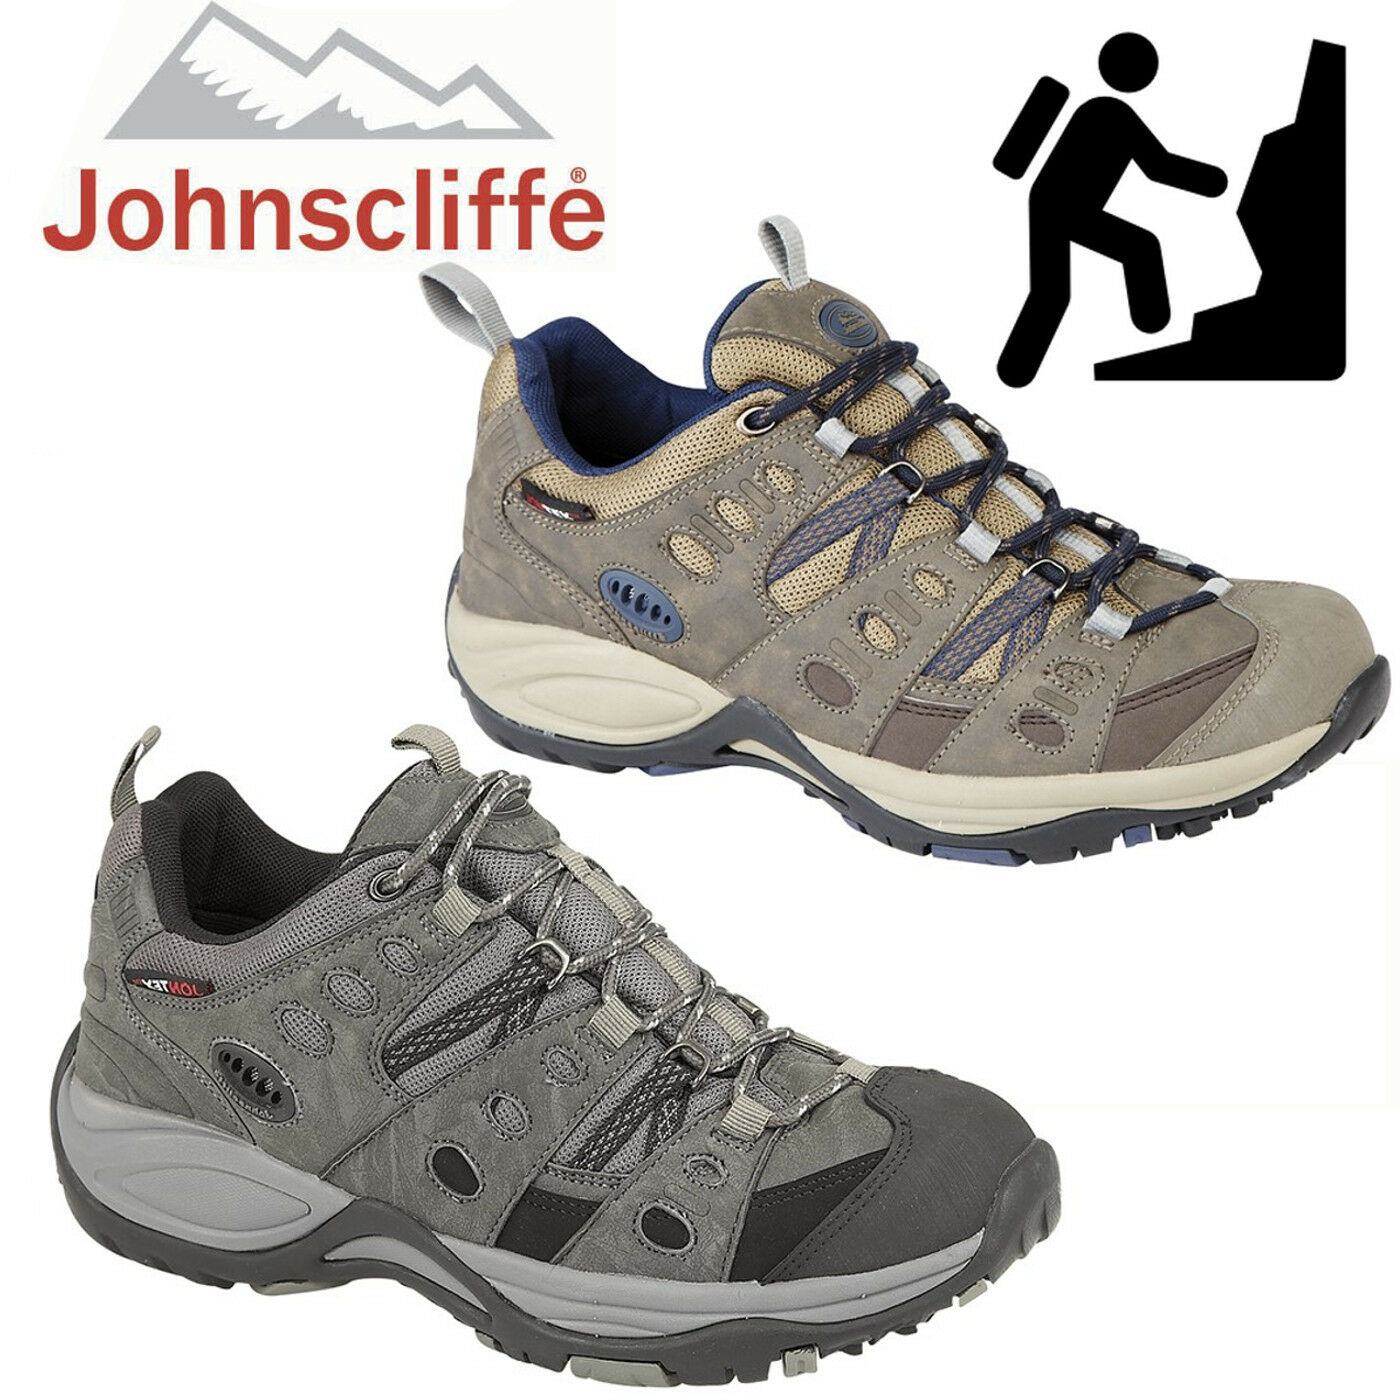 f099ee450b2 MENS JOHNSCLIFFE WATERPROOF HIKING SHOES SIZE UK 4 - 14 TRAINERS ...